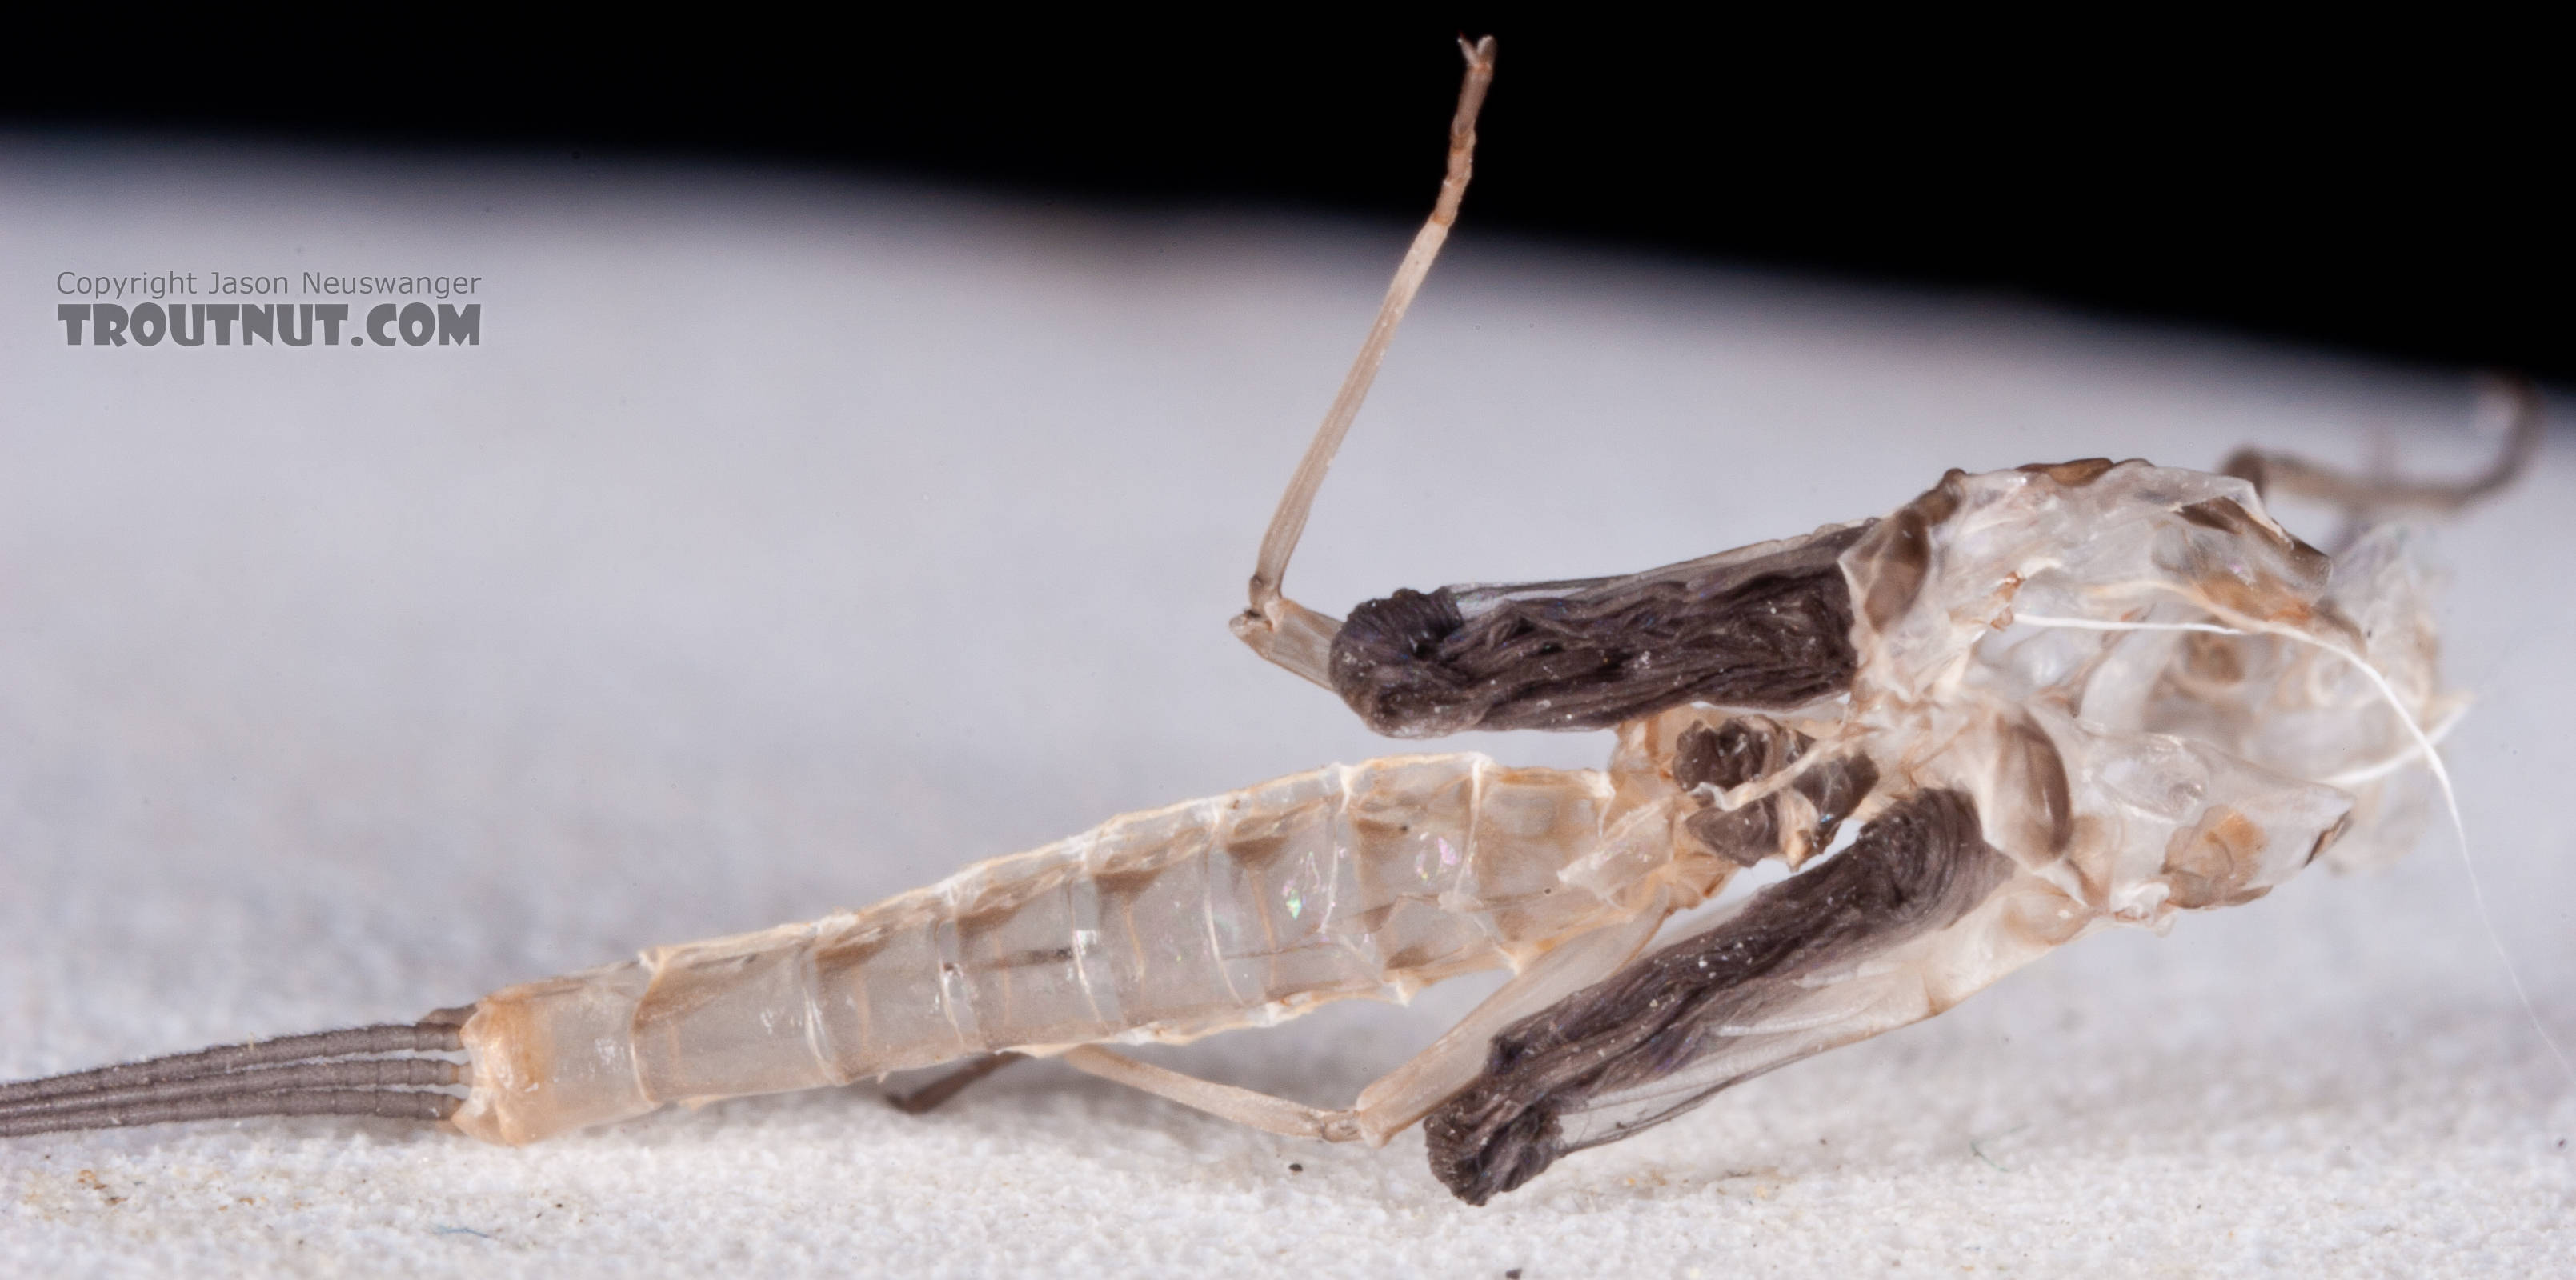 Here's the skin the dun shed as it molted into this spinner.  Male Ephemerella aurivillii Mayfly Spinner from Nome Creek in Alaska